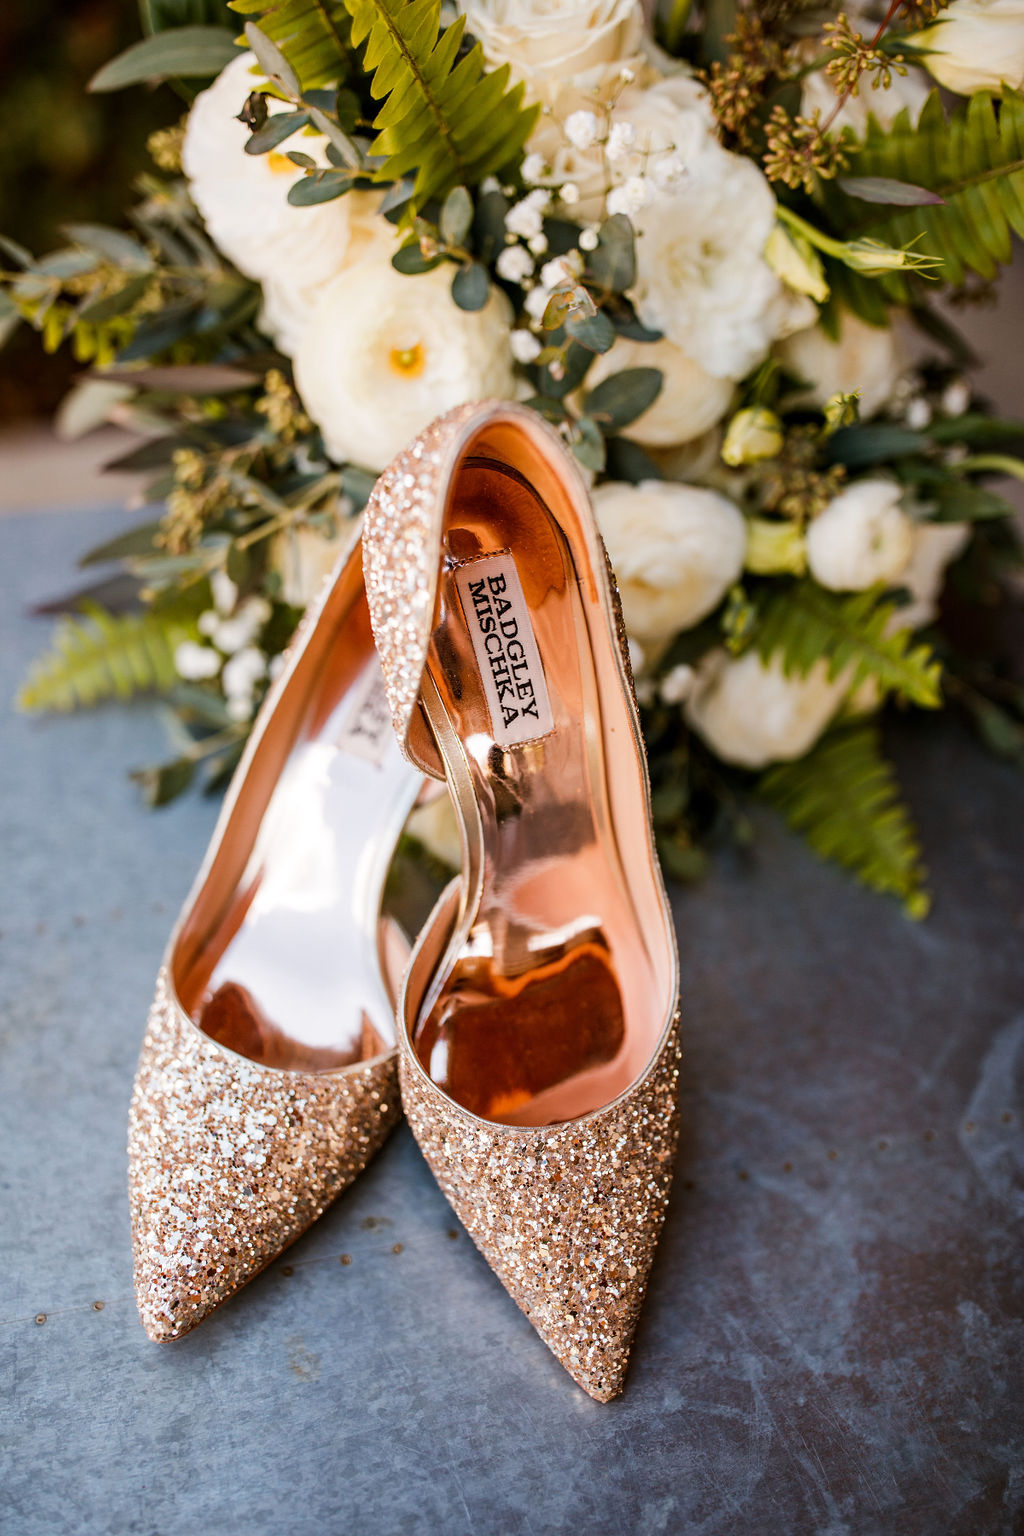 Sparkly Badgley Mischka Wedding Shoes: Beautiful Graystone Quarry Wedding captured by John Myers Photography & Videography